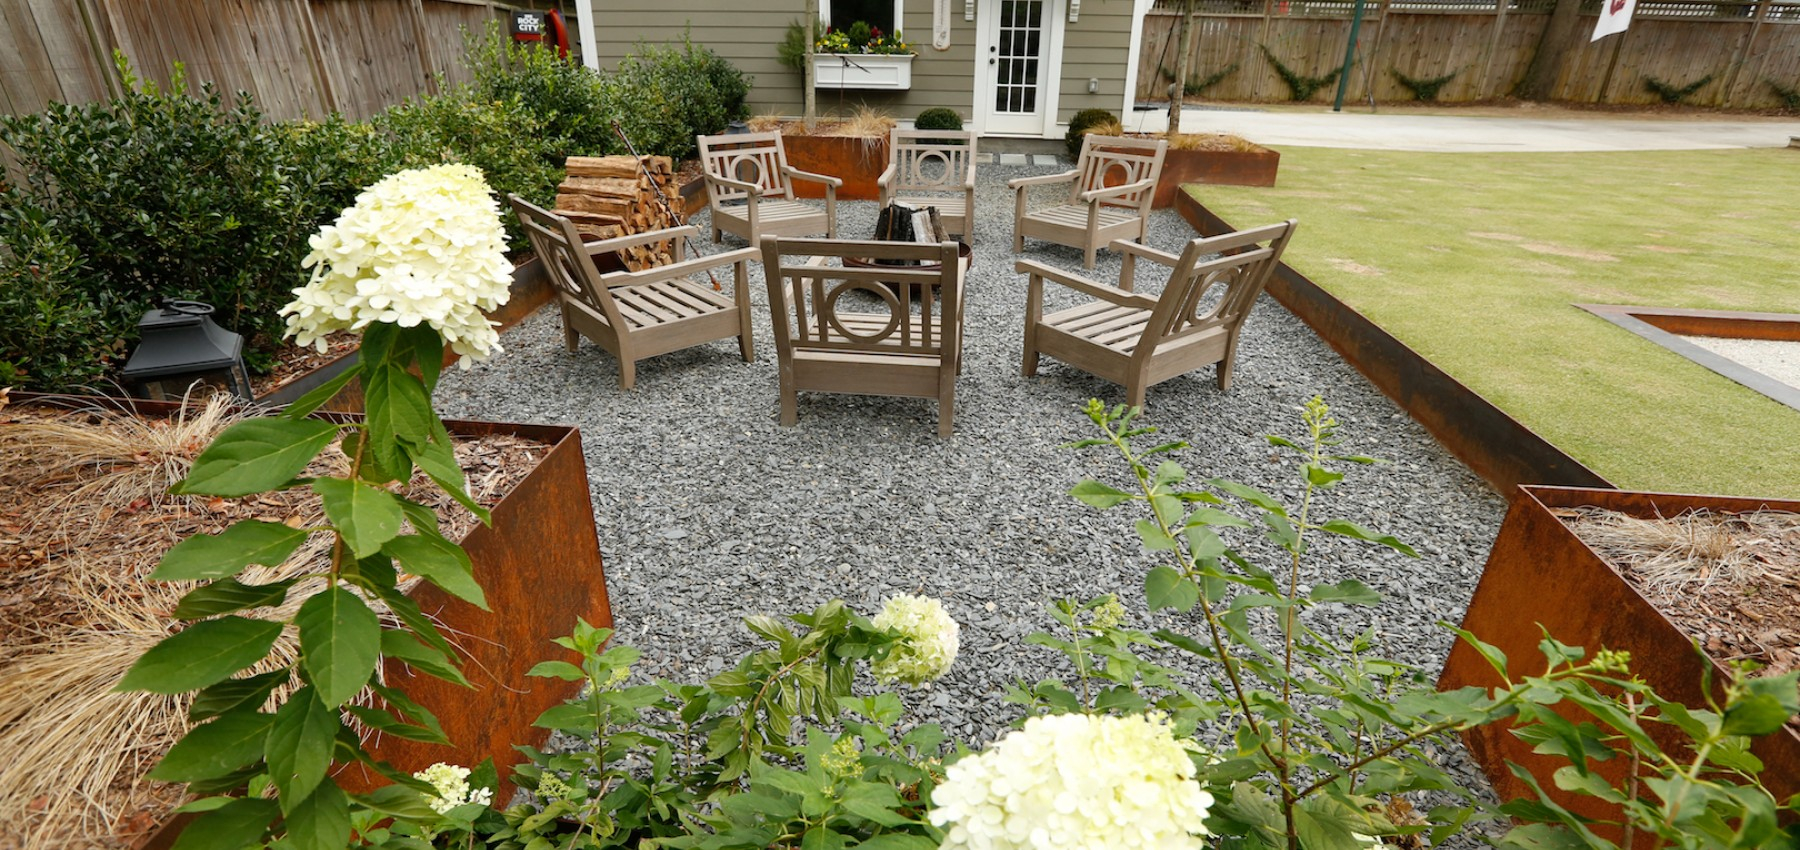 How Much Does Landscaping Cost throughout Cost To Landscape A Backyard